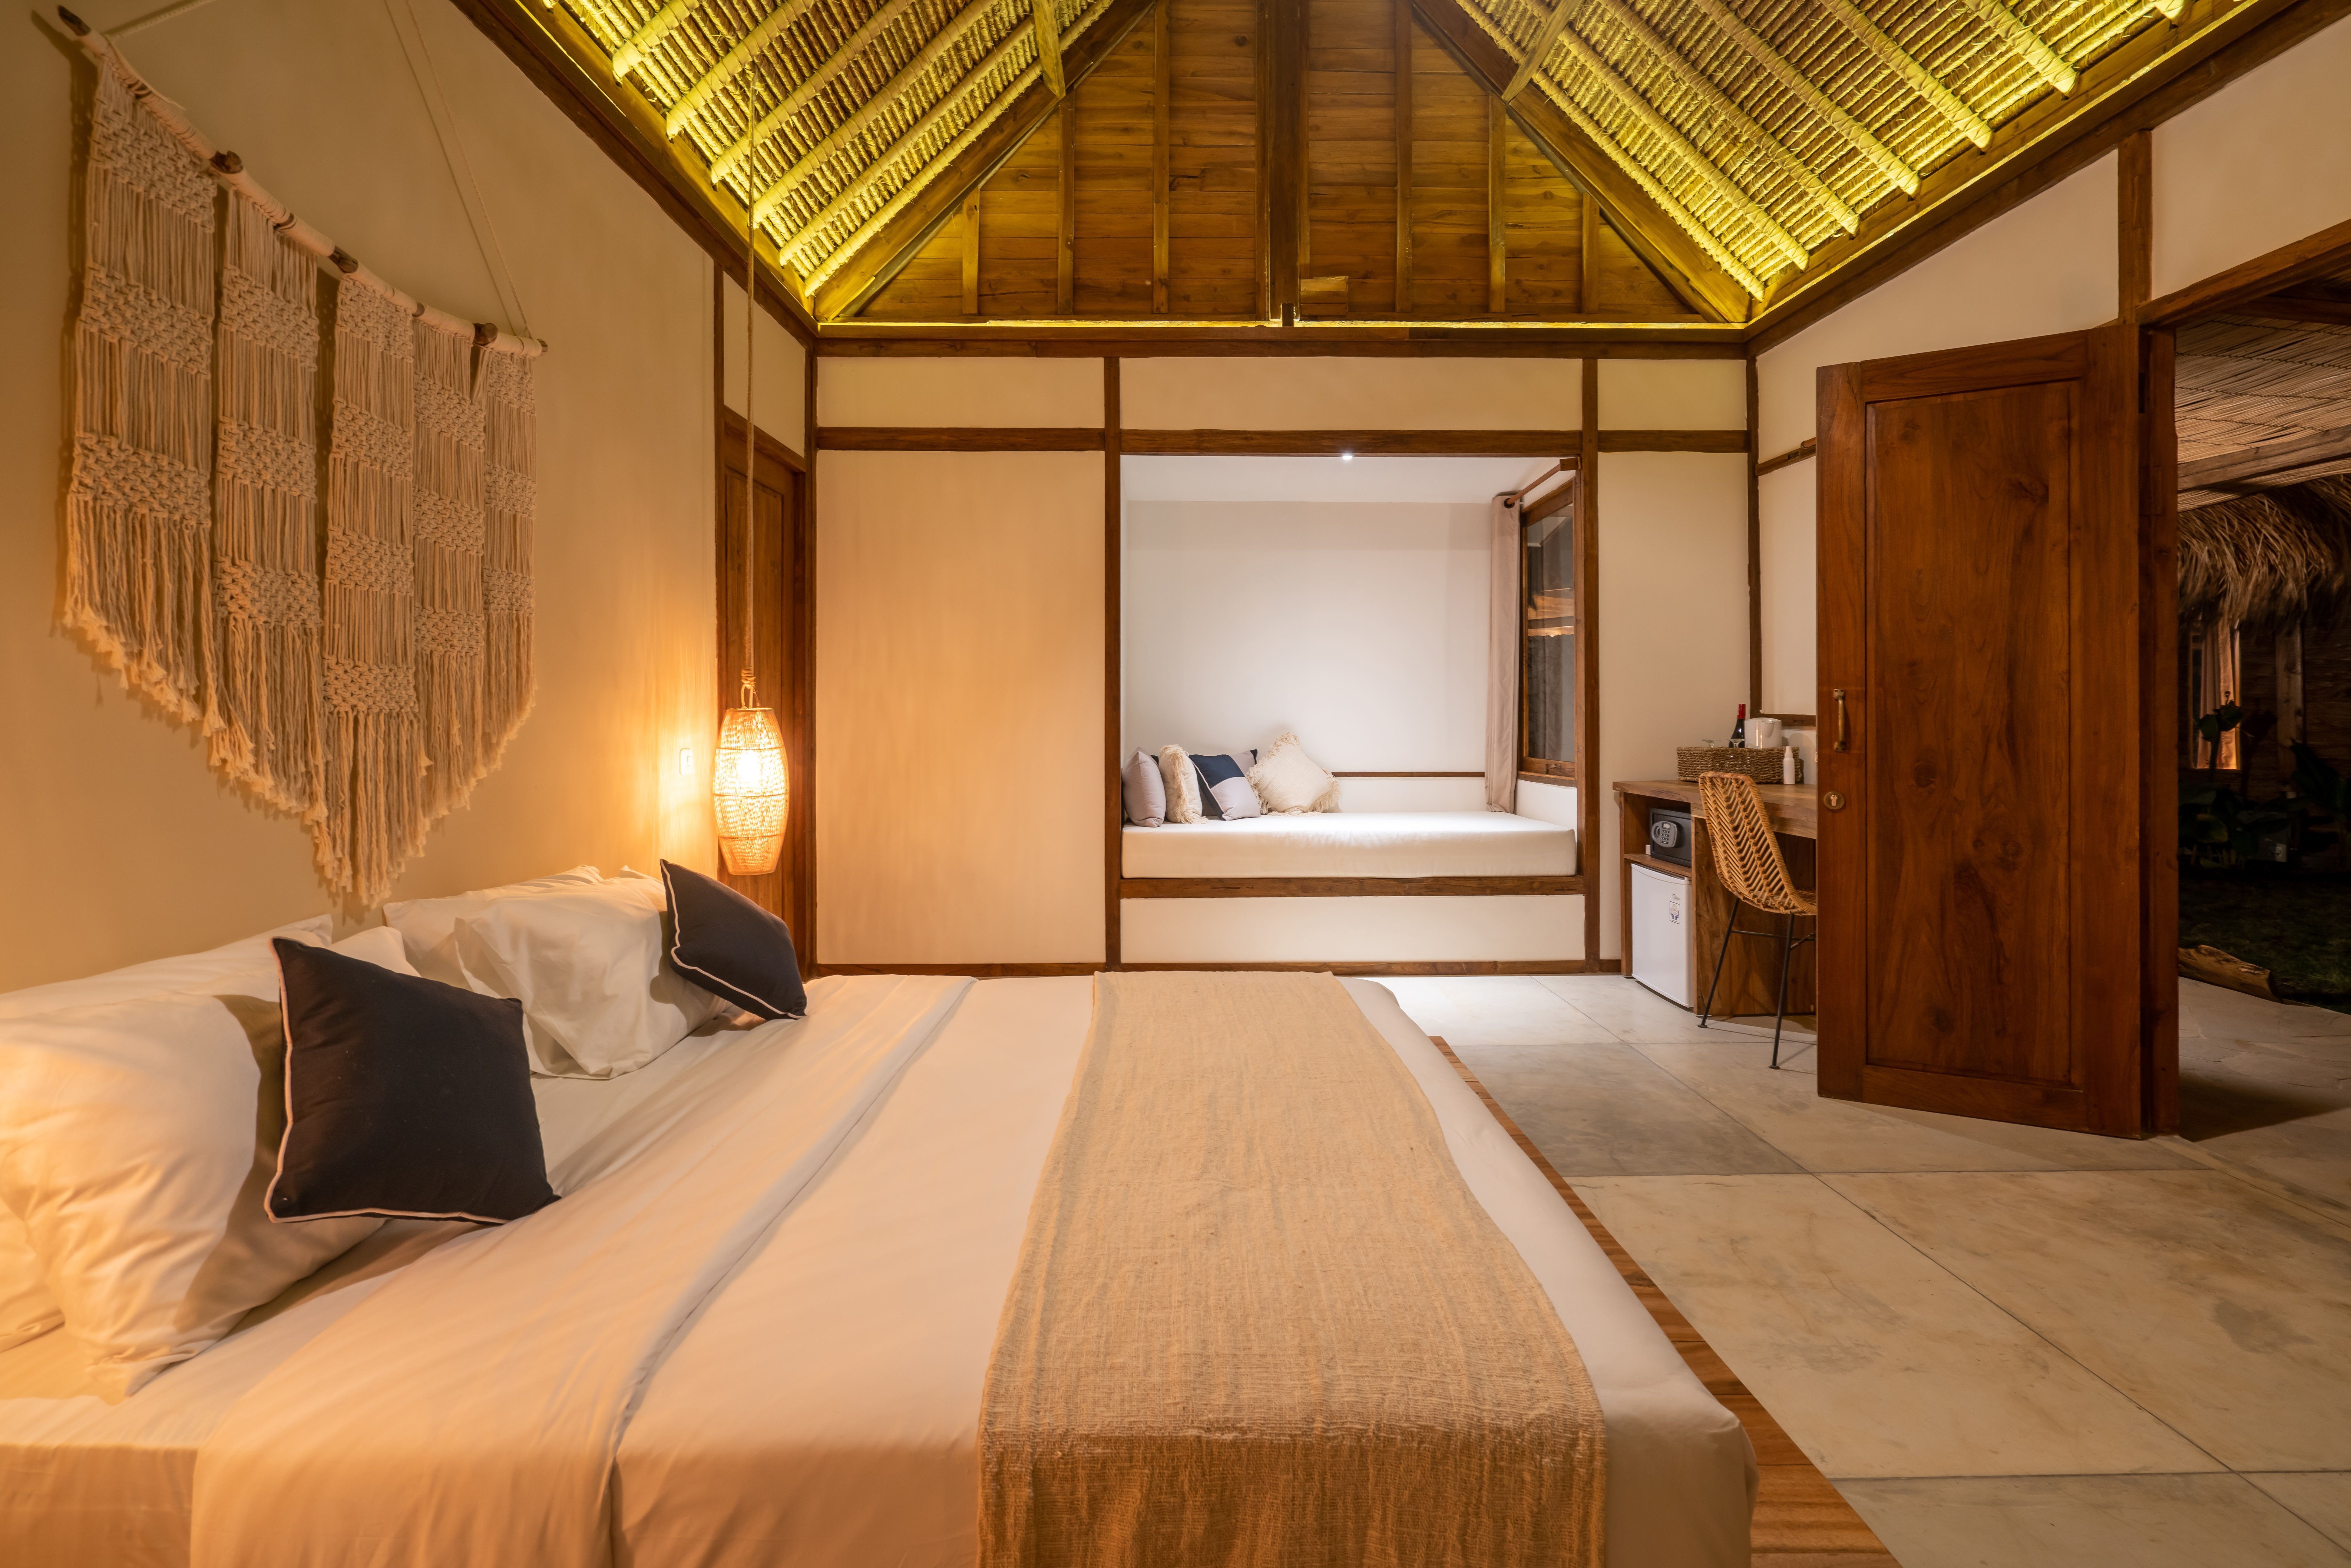 Angkasa Honeymoon Suite Offers A Cosy Boho Bedroom With A Daybed To Unwind Desk With Safe And Mini Fridge For Some Extra Ref Boho Bedroom Honeymoon Suite Home